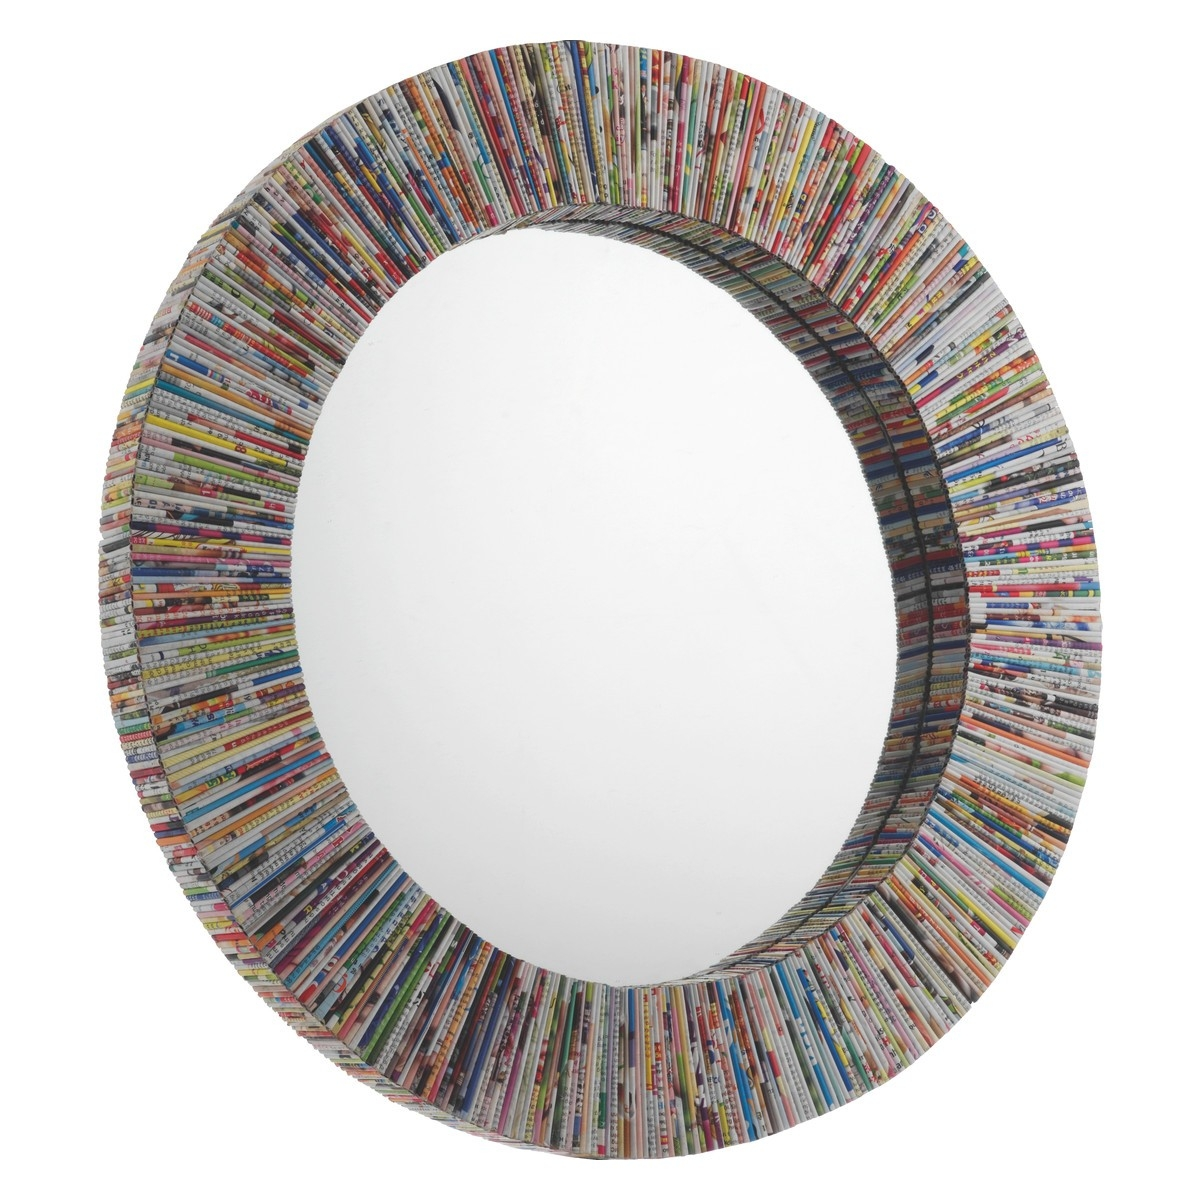 Mirrors Full Length Large Round Wall Mirrors Habitat With Round Mirrors For Sale (Image 5 of 15)